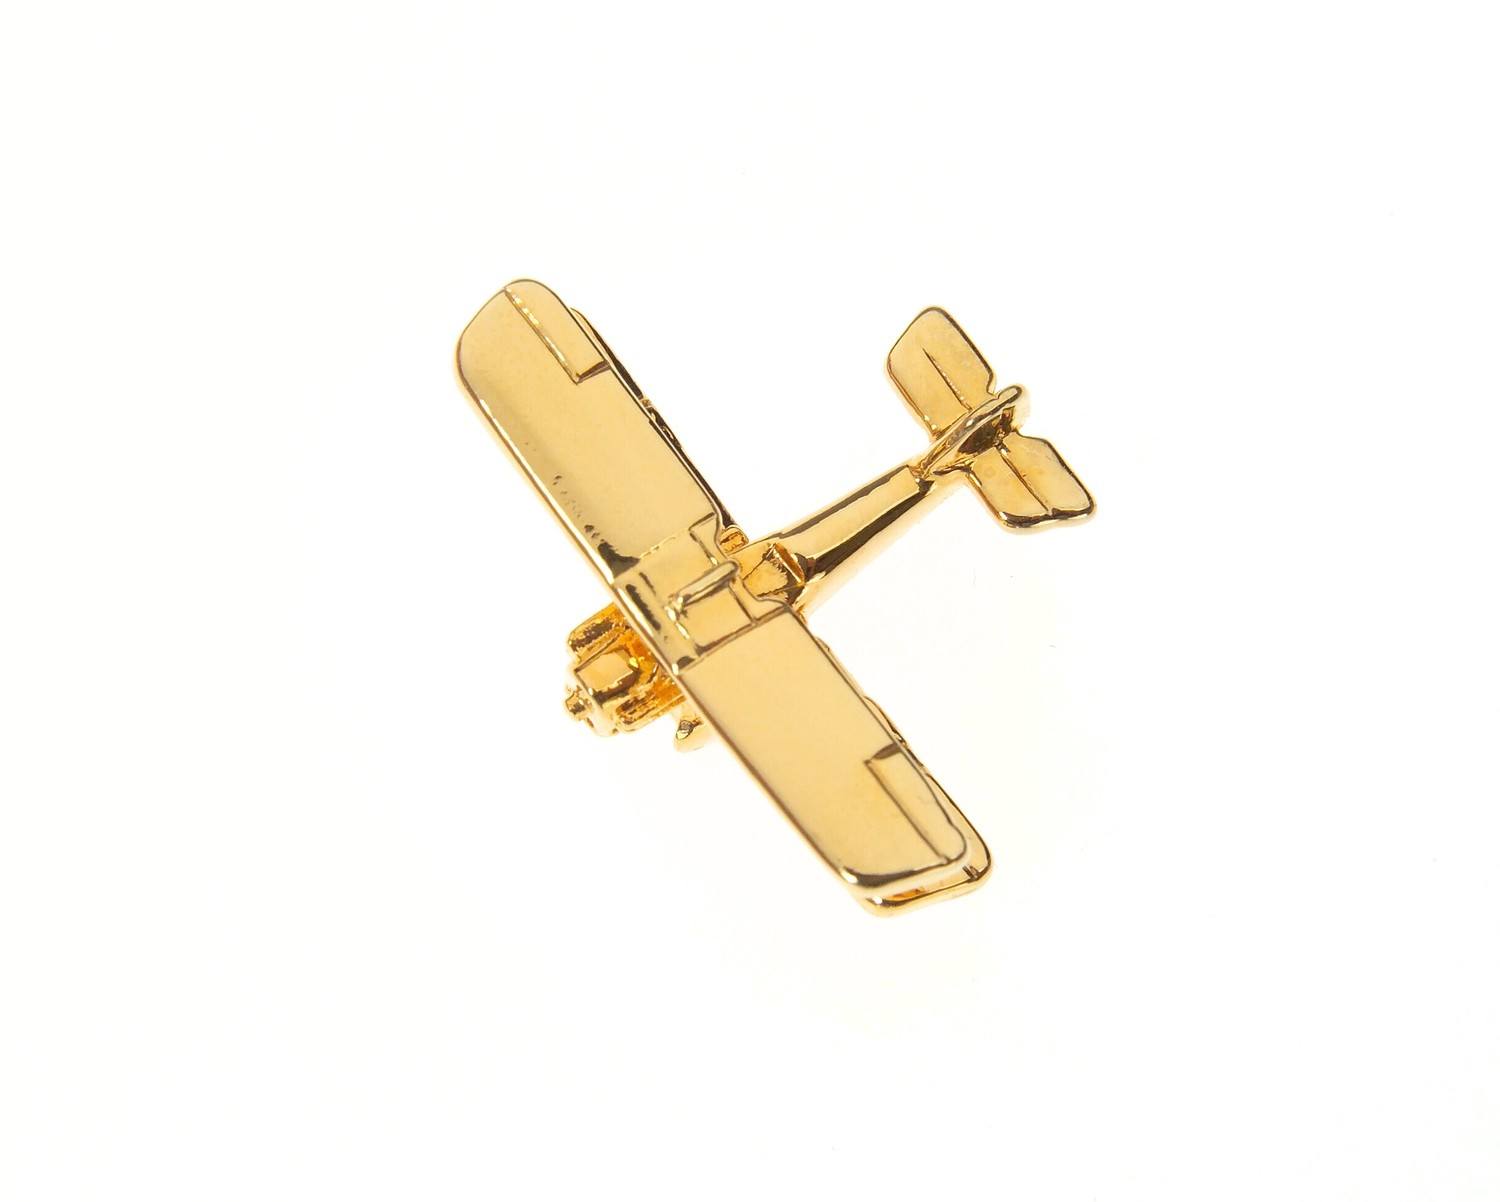 SE5A Gold Plated Tie / Lapel Pin